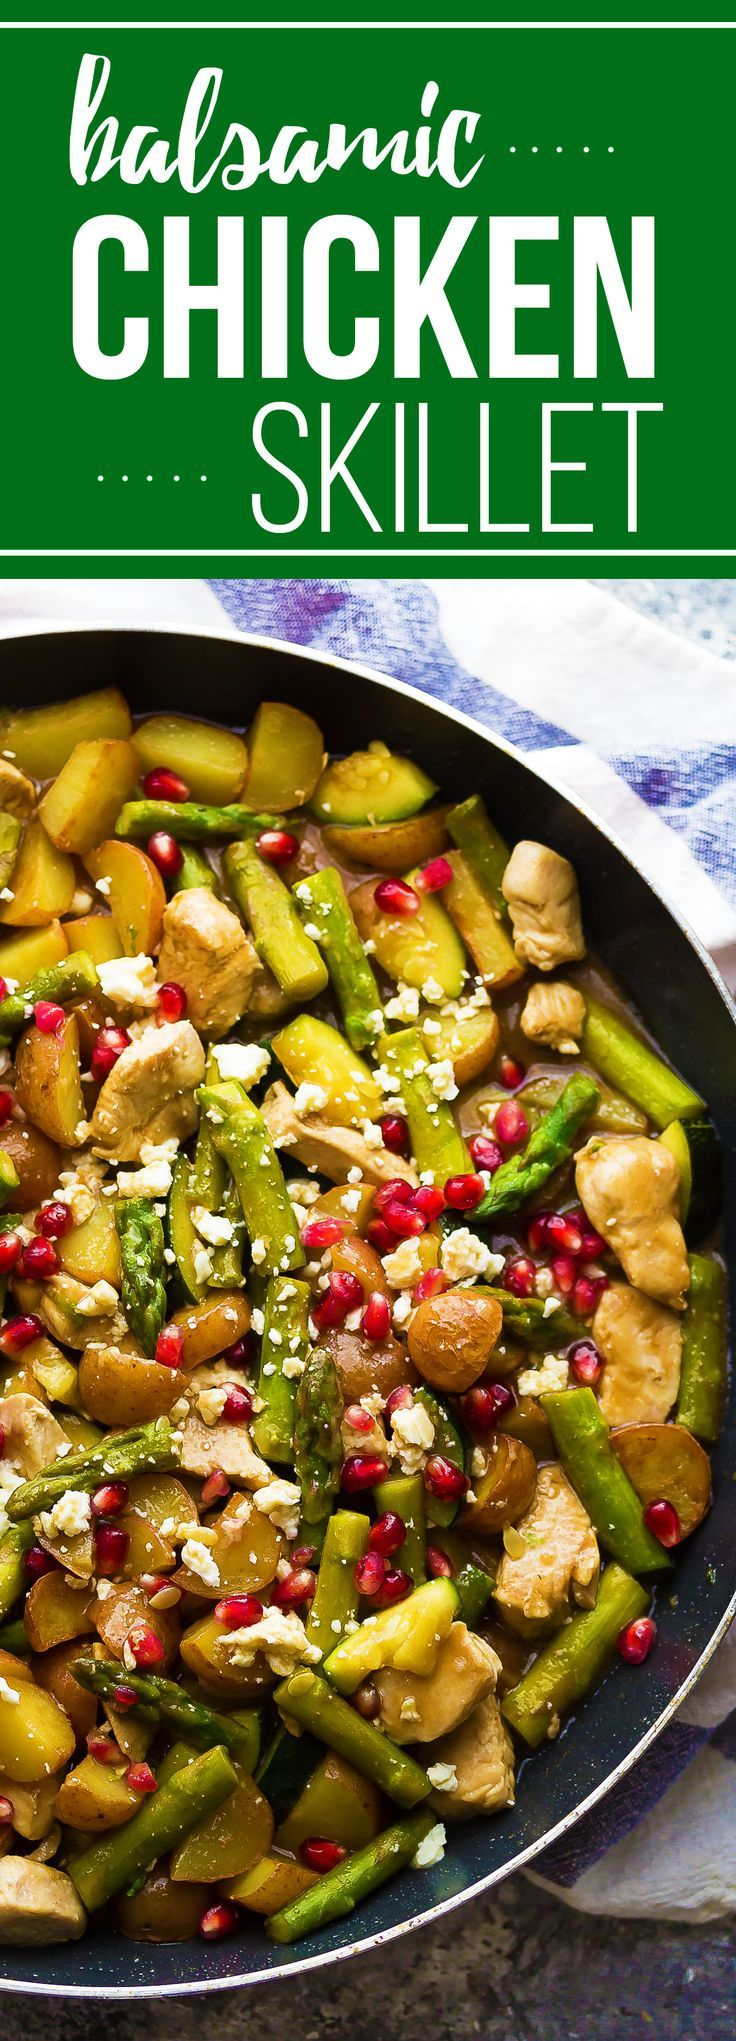 This healthy balsamic chicken skillet with pomegranate and feta and is packed full of veggies for a healthy dinner option.